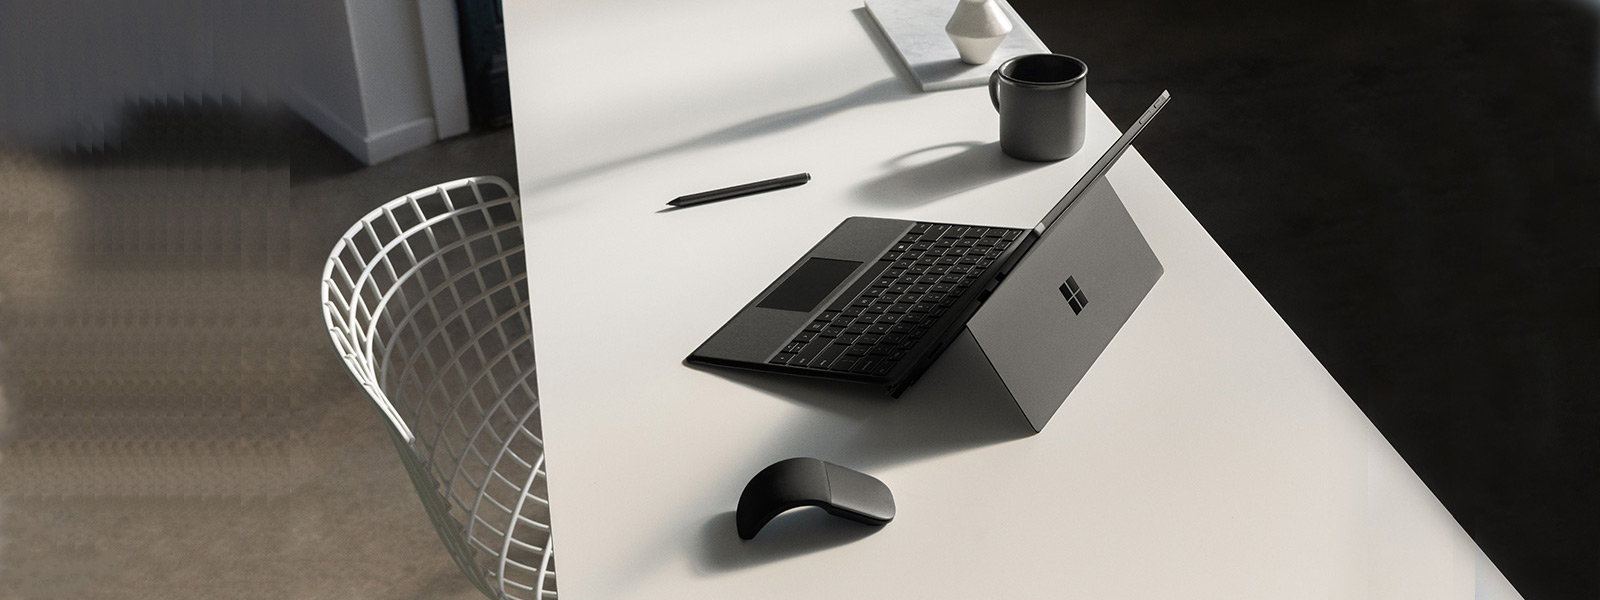 Surface Pro 6 on a desk in laptop mode with Surface Pro Type Cover, Surface Pen and Surface Arc Mouse